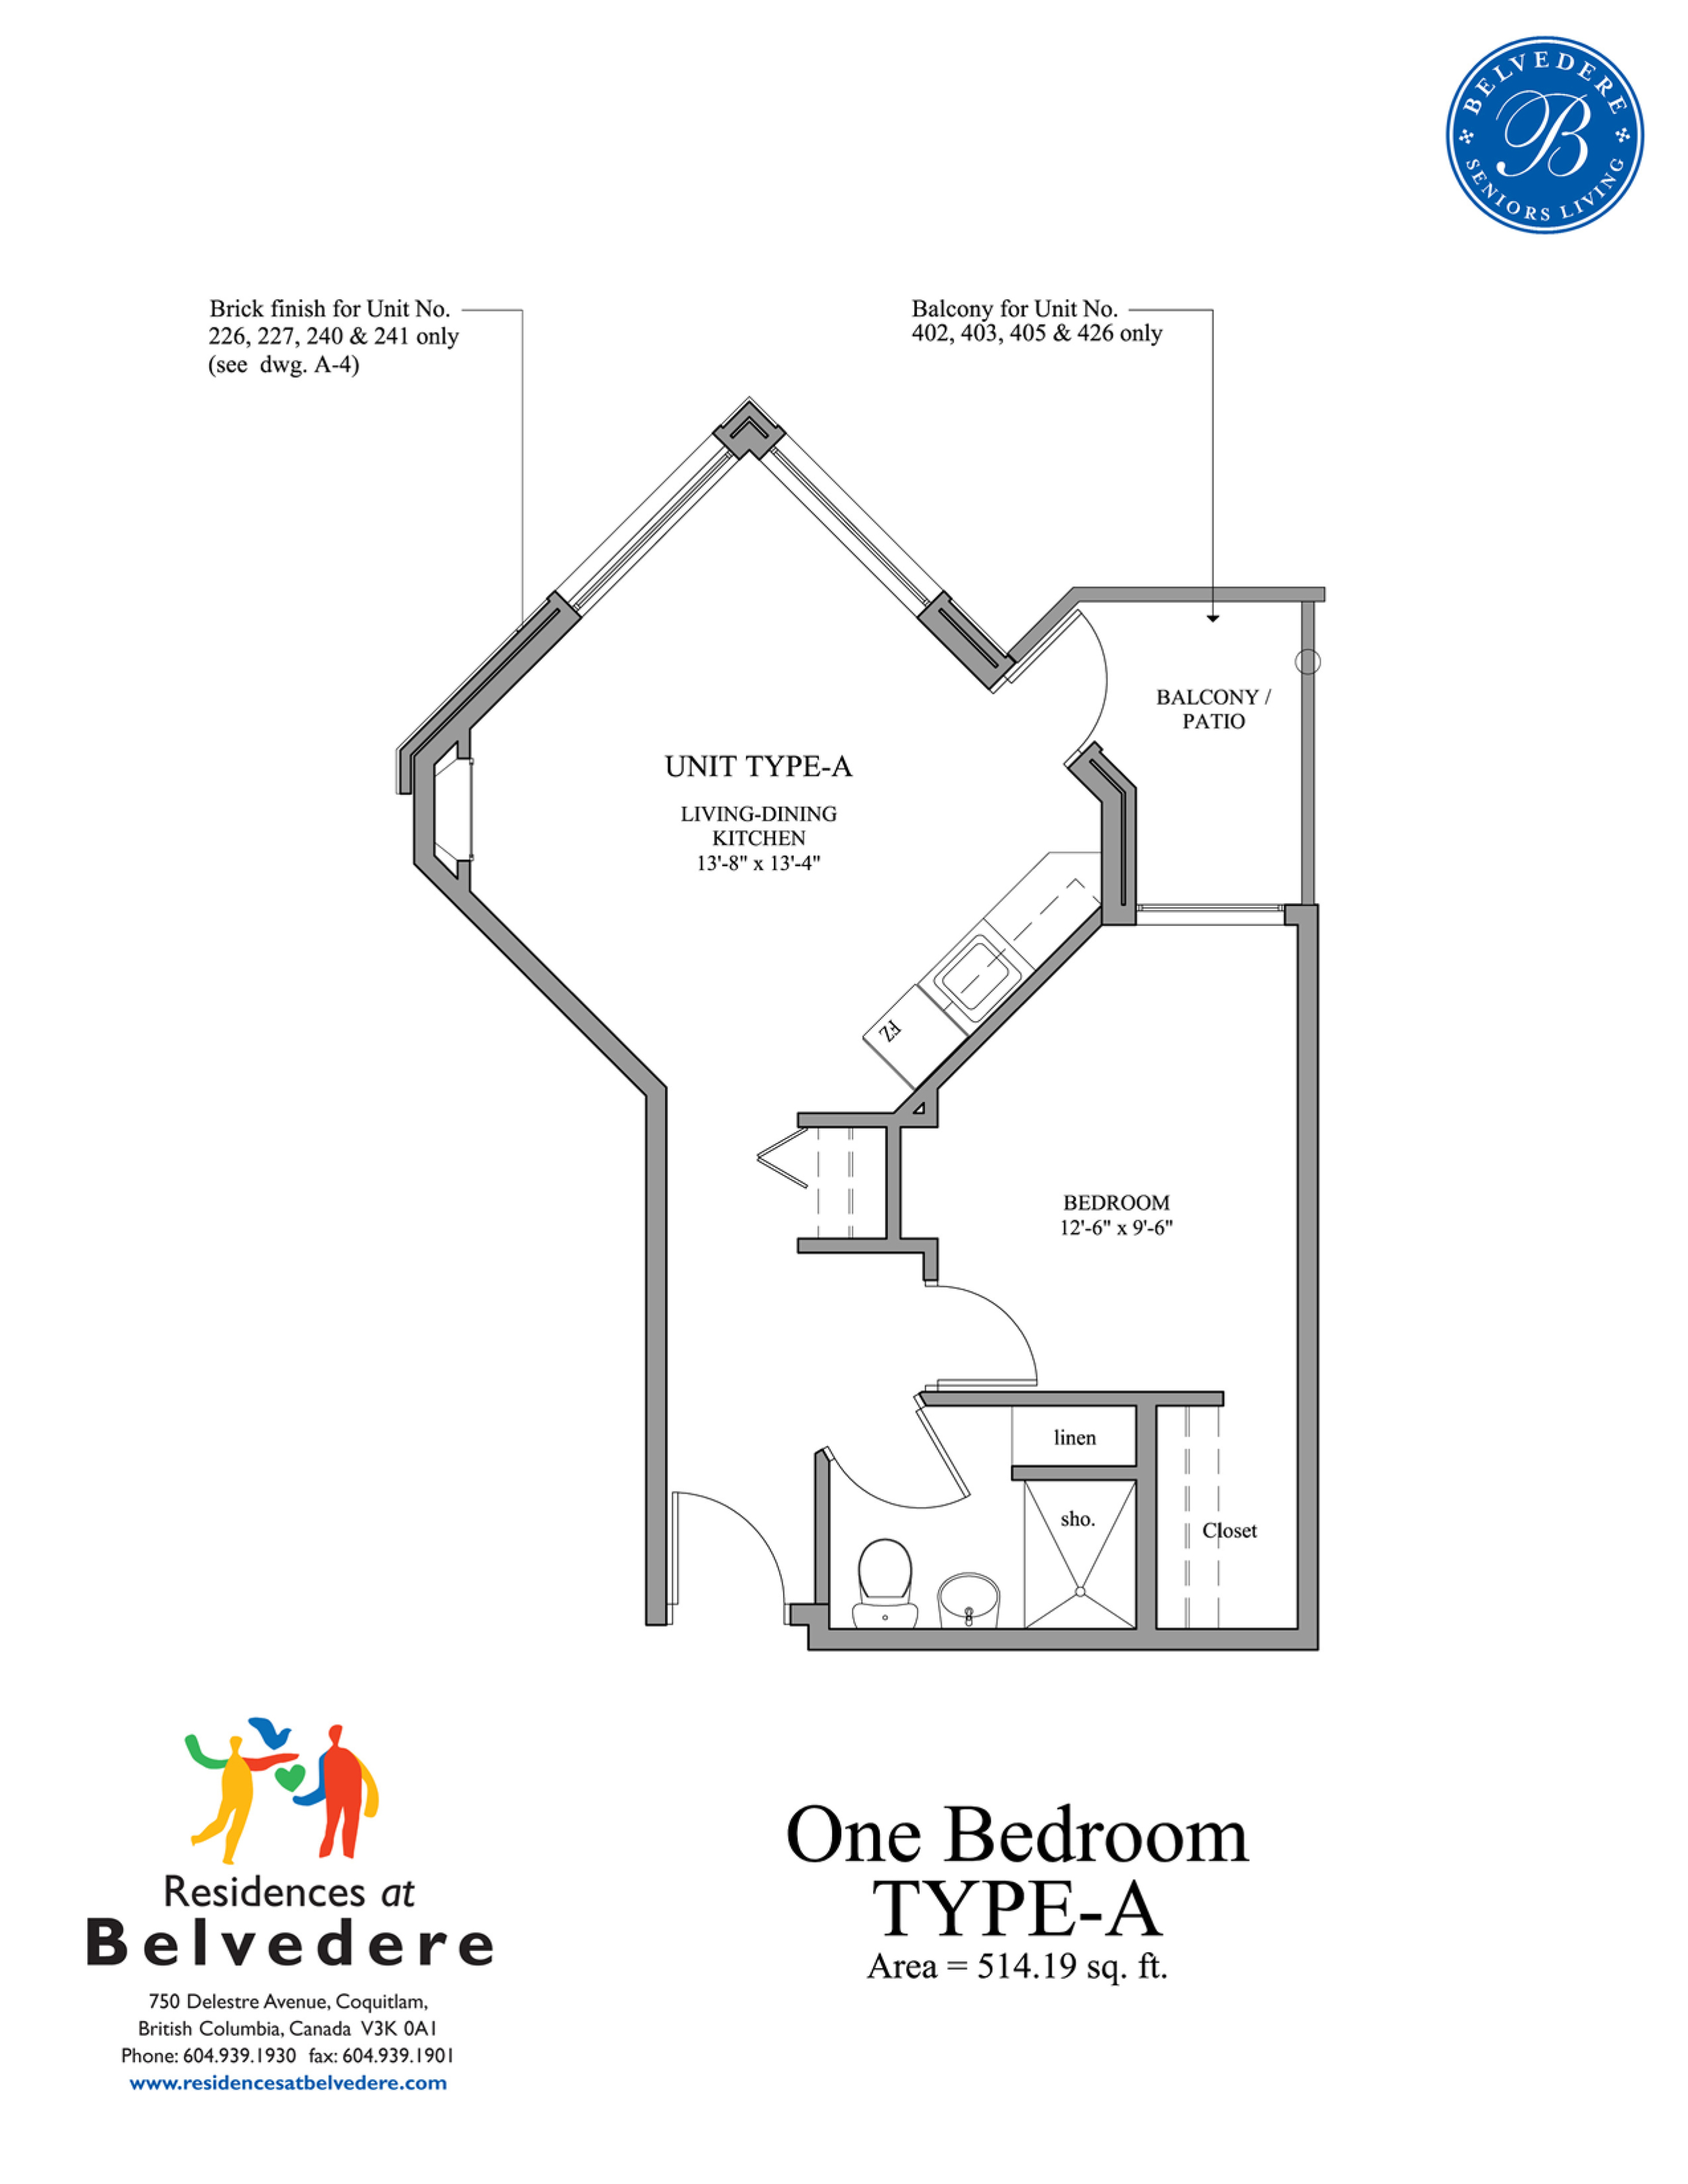 One Bedroom TYPE-A